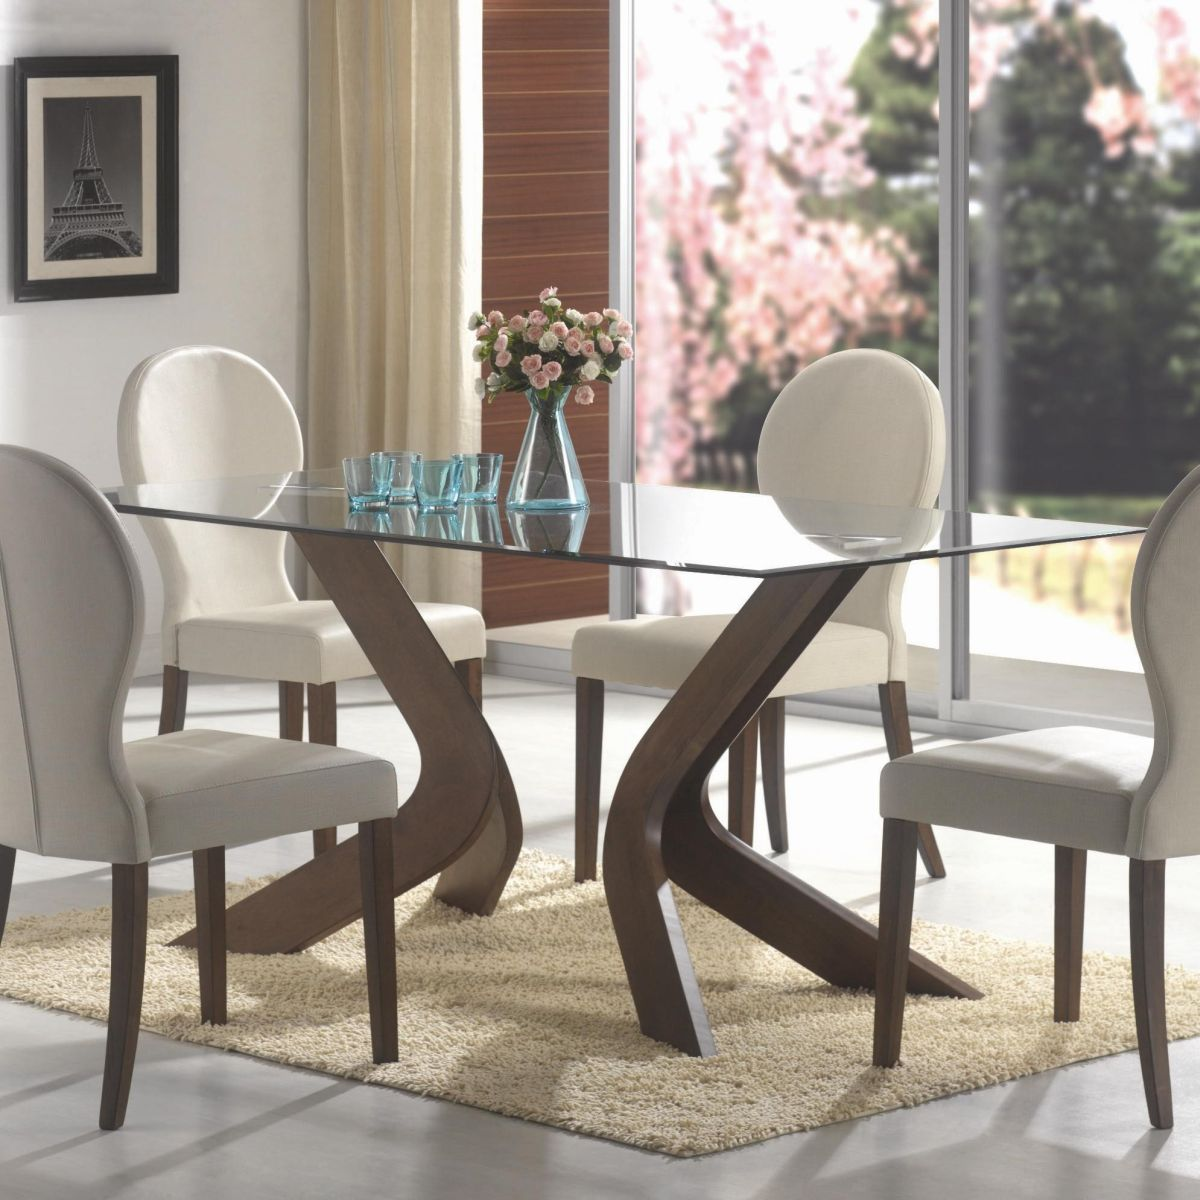 glass top dining table glass kitchen table Oval back dining chairs and glass top table